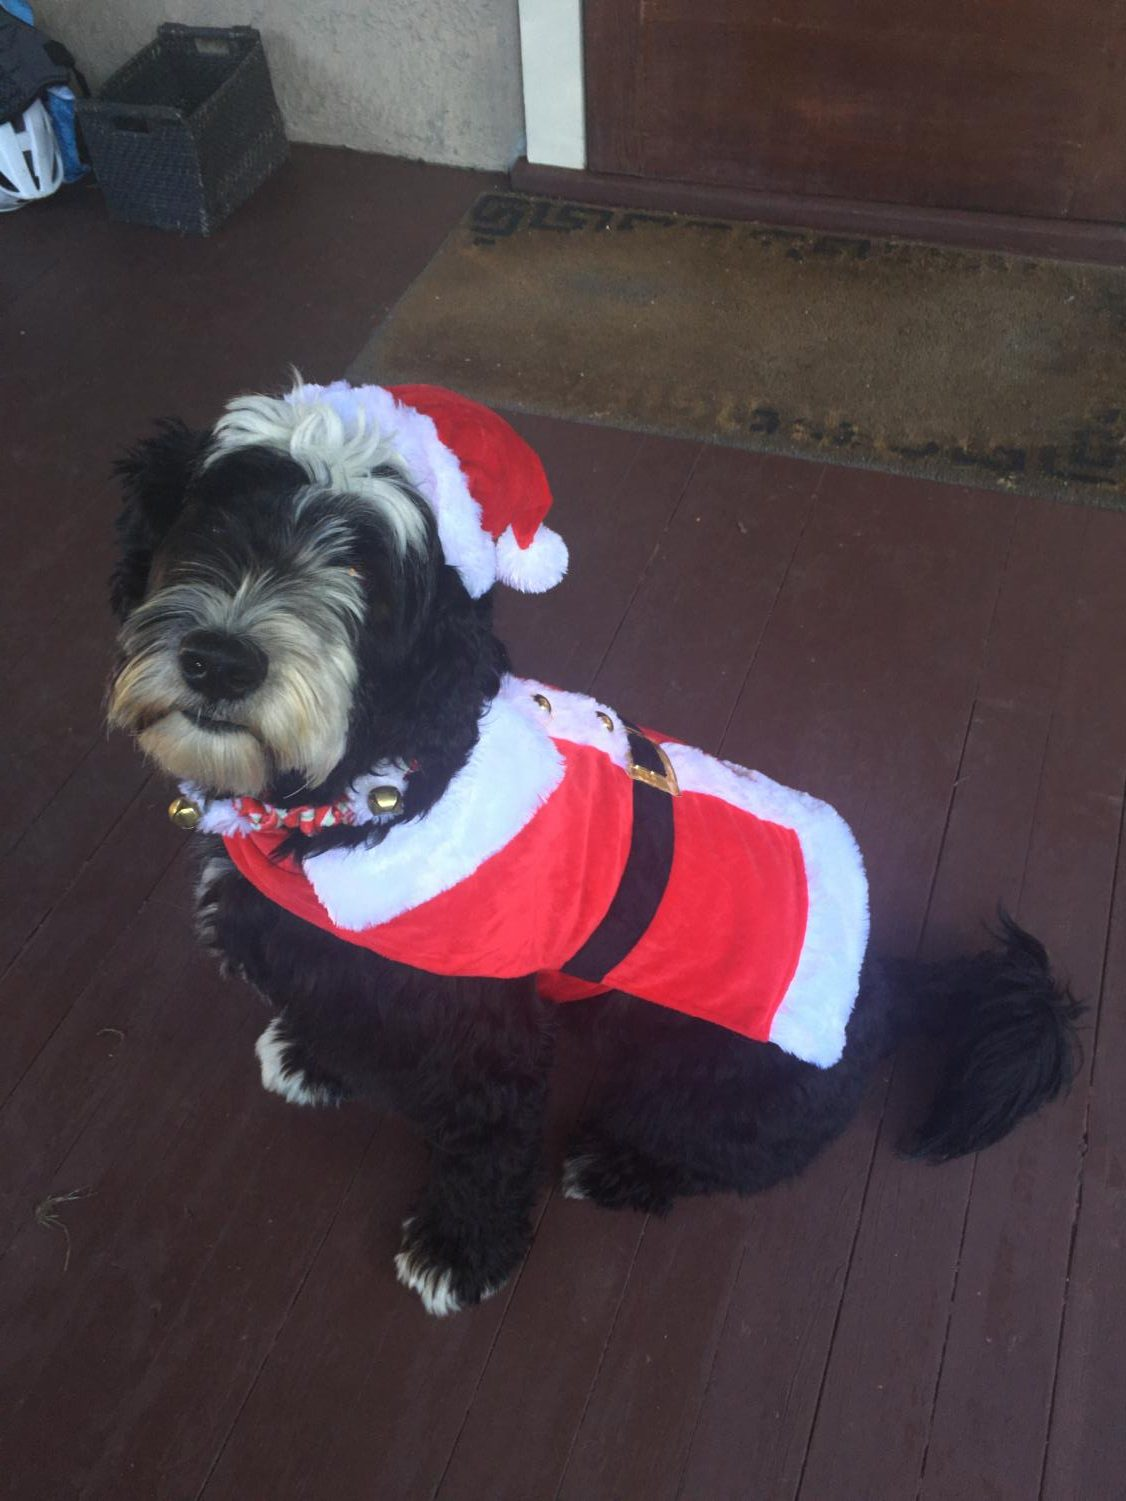 Dog%E2%80%99s+Name%3A+Ollie%0A%E2%80%9COllie%E2%80%99s+always+Santa+for+Christmas+but+he+loves+being+festive+all+year+around.%E2%80%9D%0A-+Maddie+Reynders+%2719